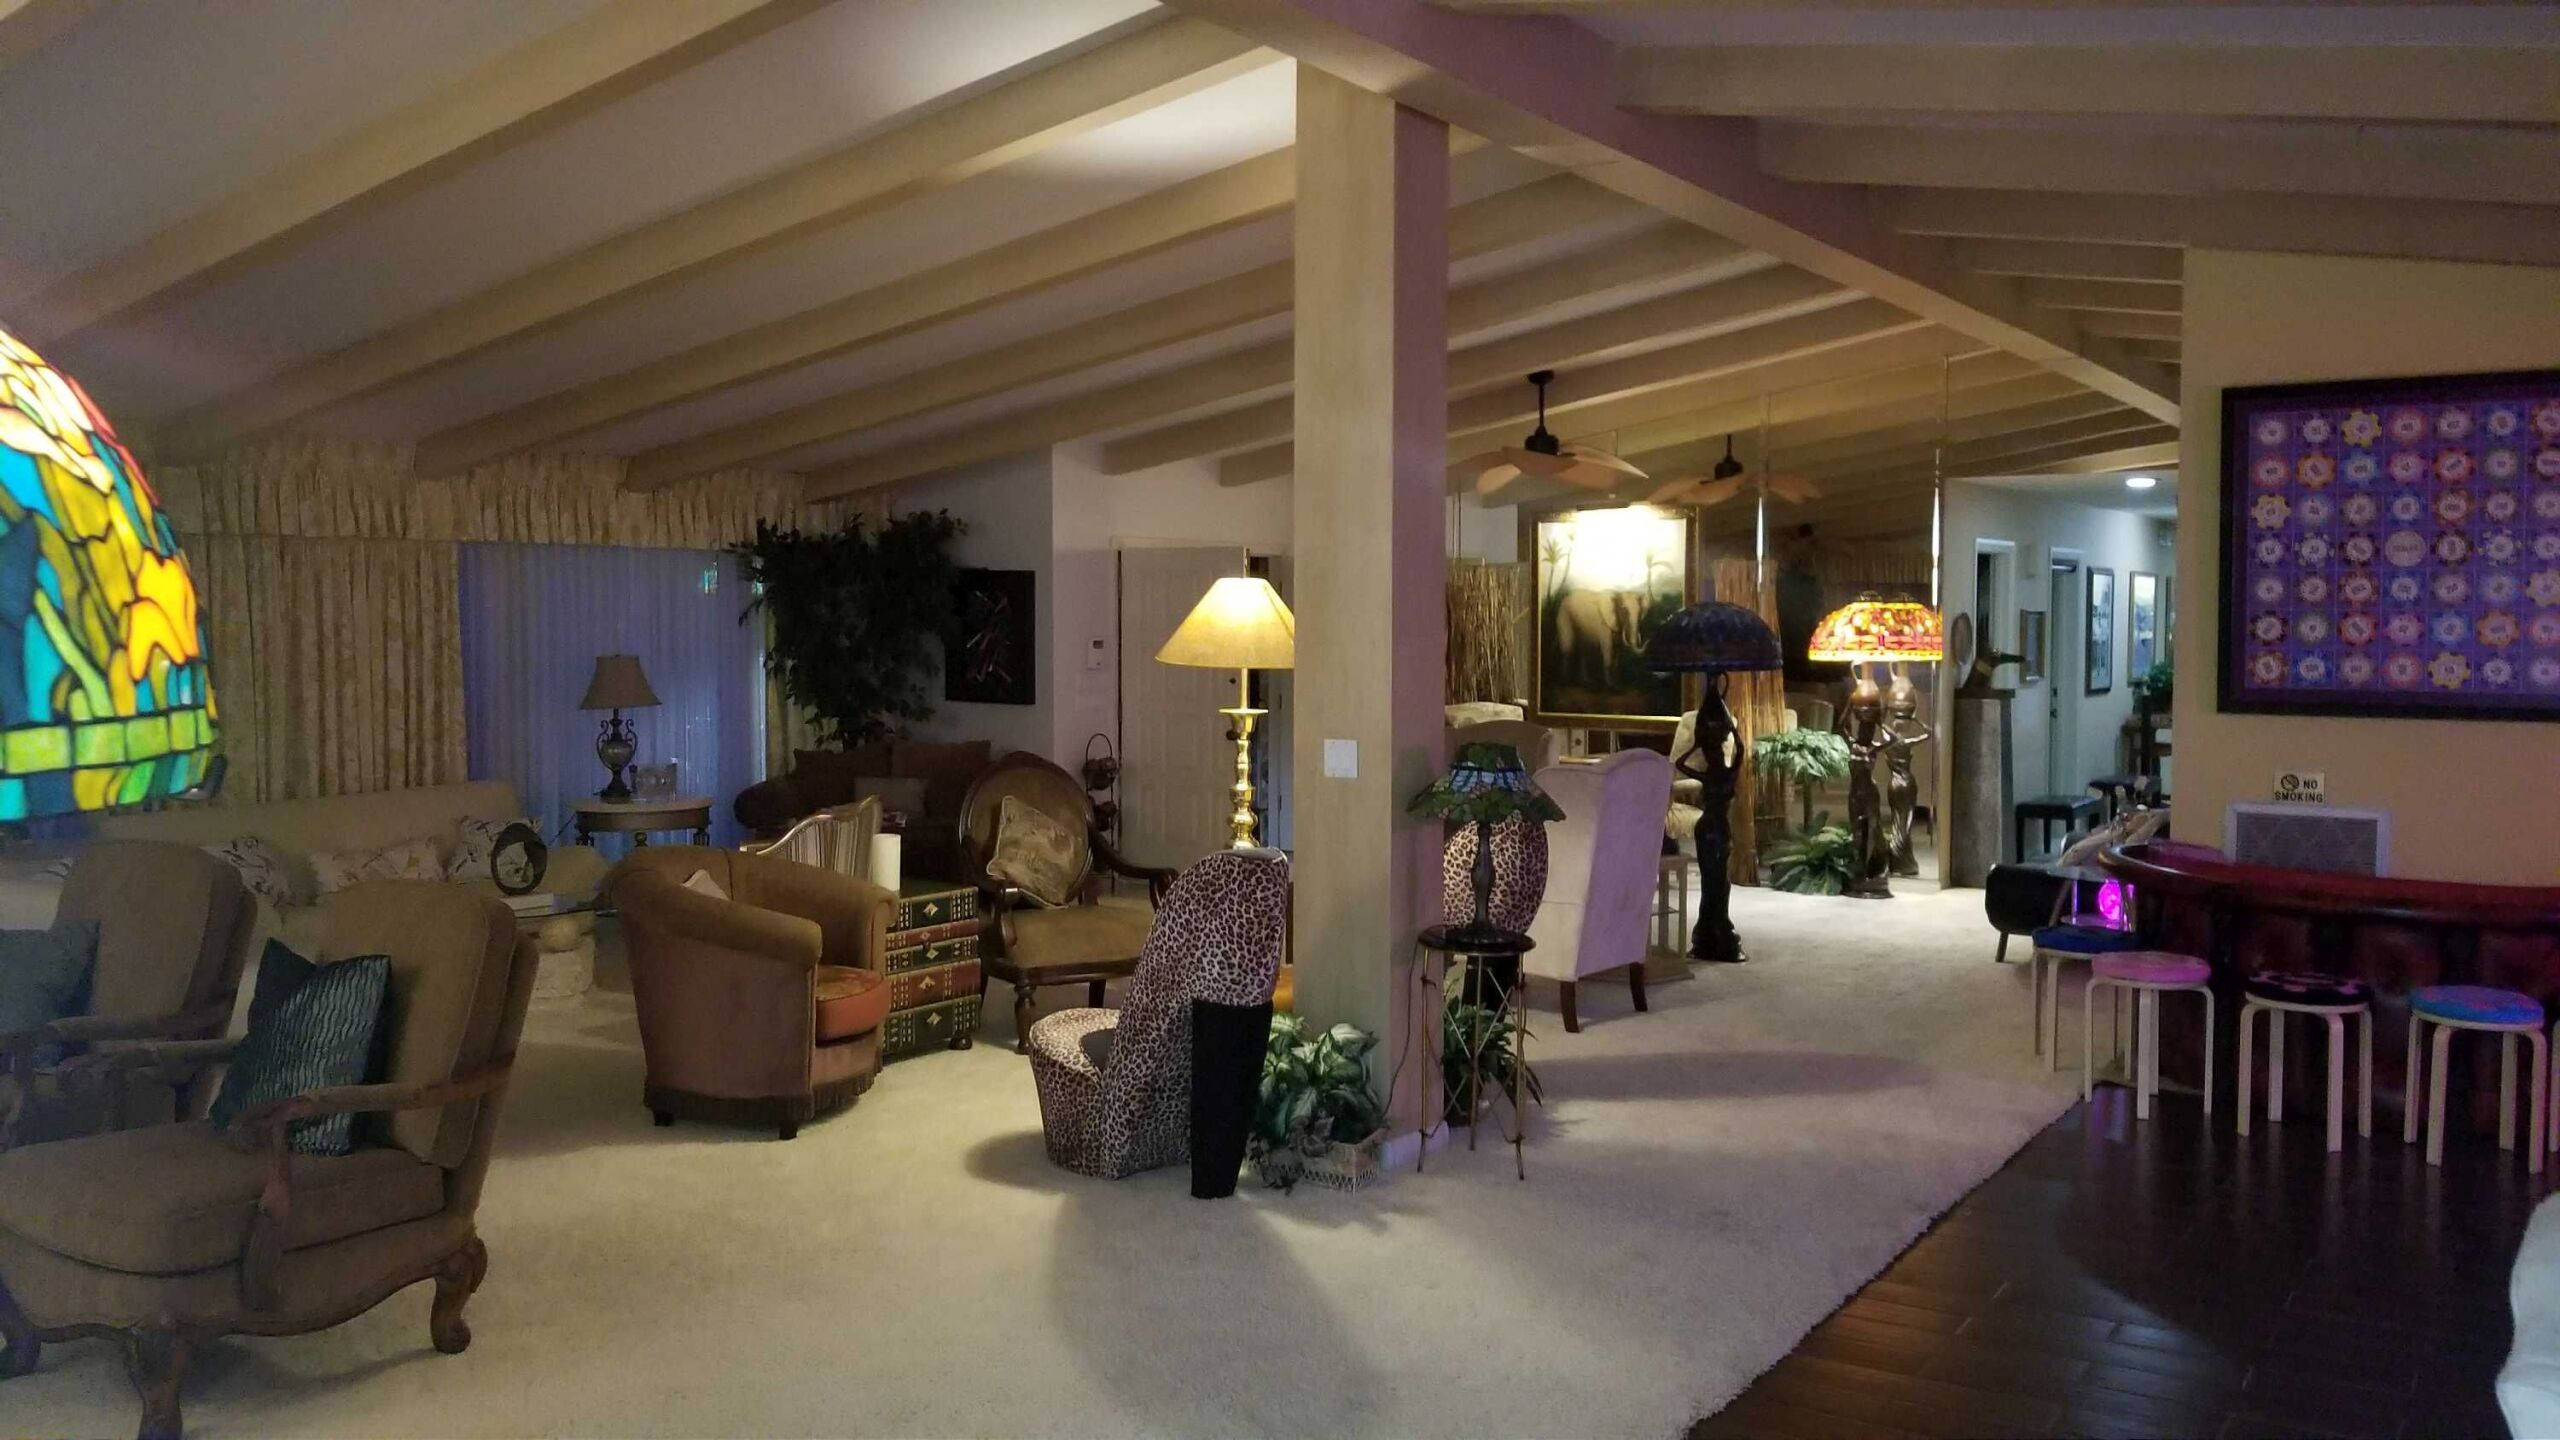 PHOTOS: 1960s bomb shelter house on sale for $18 million in Las Vegas